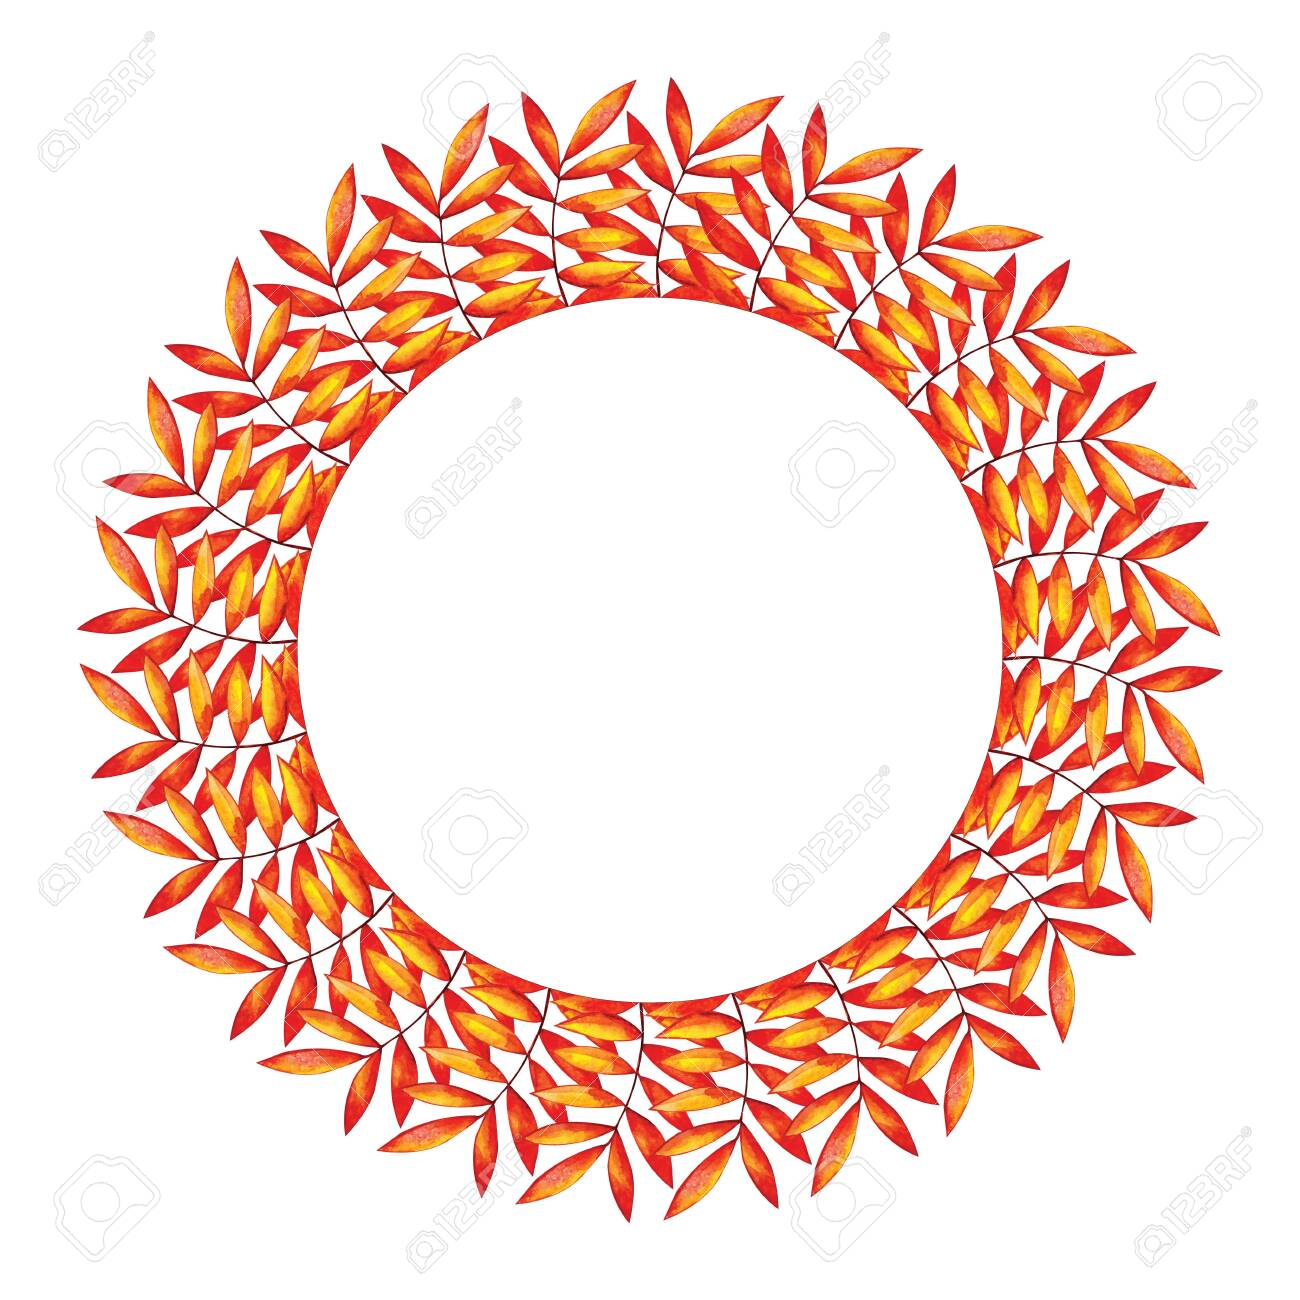 Round Frame With Red And Yellow Autumn Leaves Blank Template